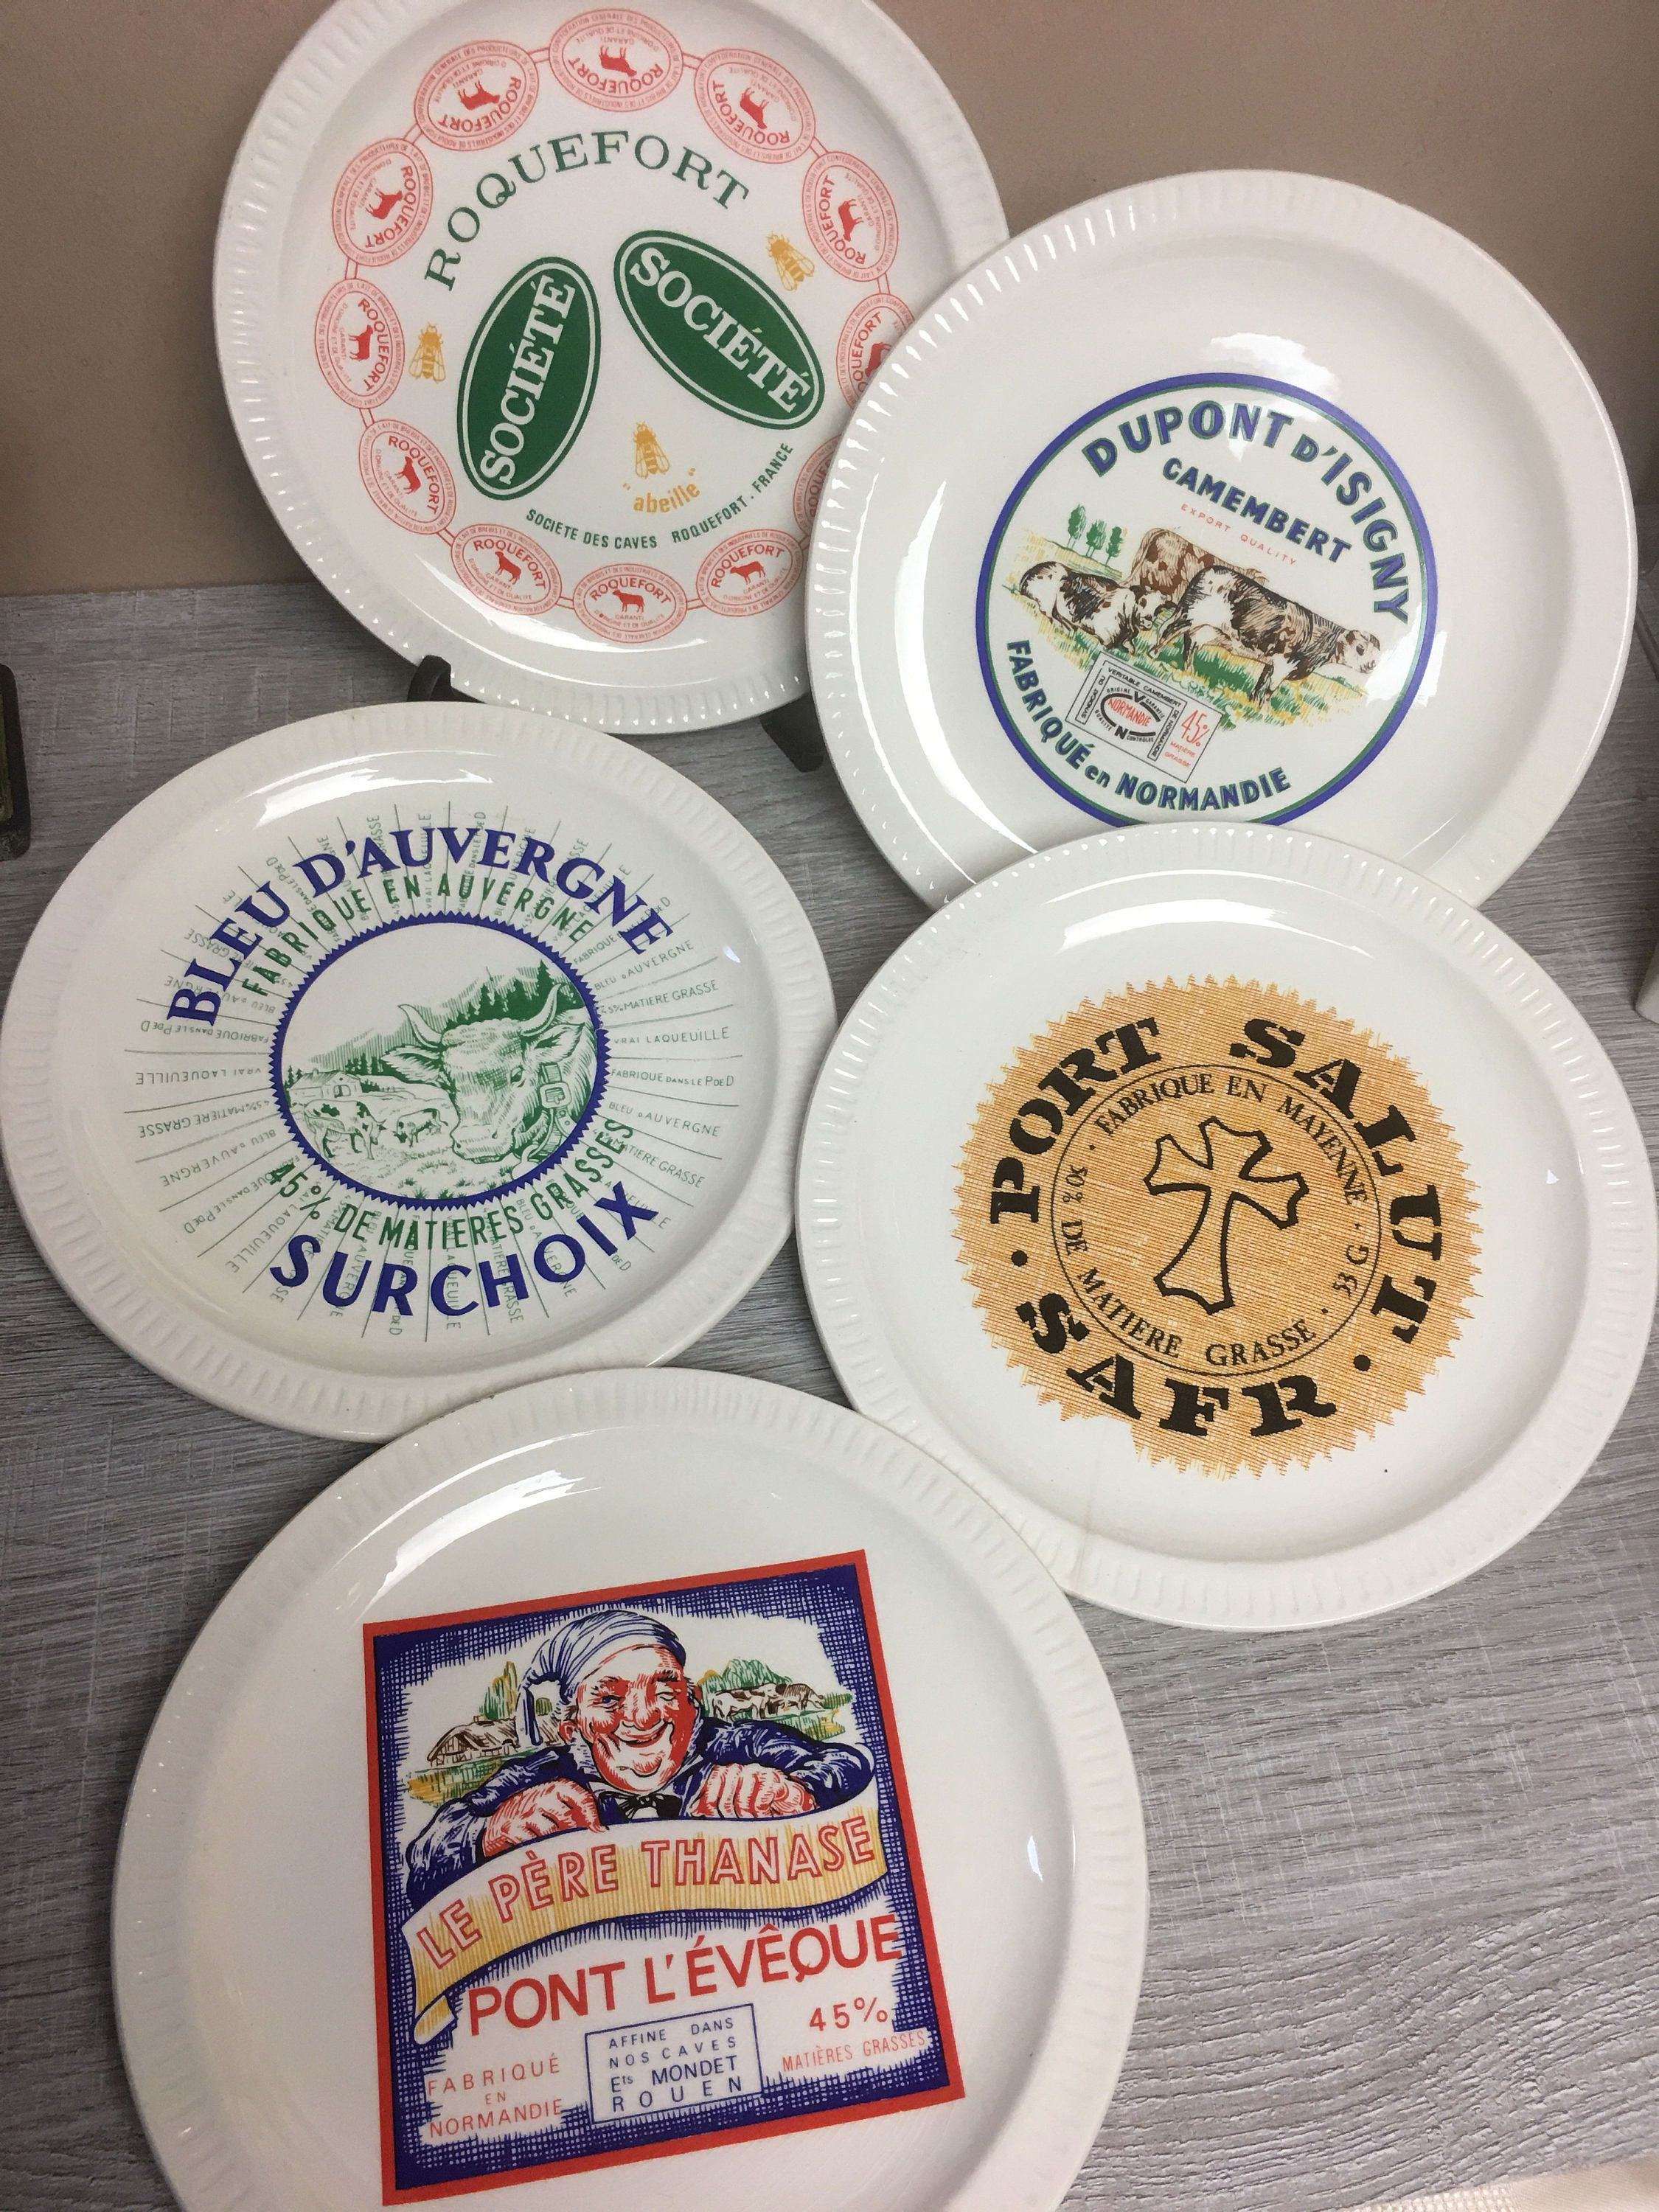 Authentic French St Amand Cheese Plates \u201cFromages de France\u201d Set of 4 & Authentic French St Amand Cheese Plates \u201cFromages de France\u201d Set ...